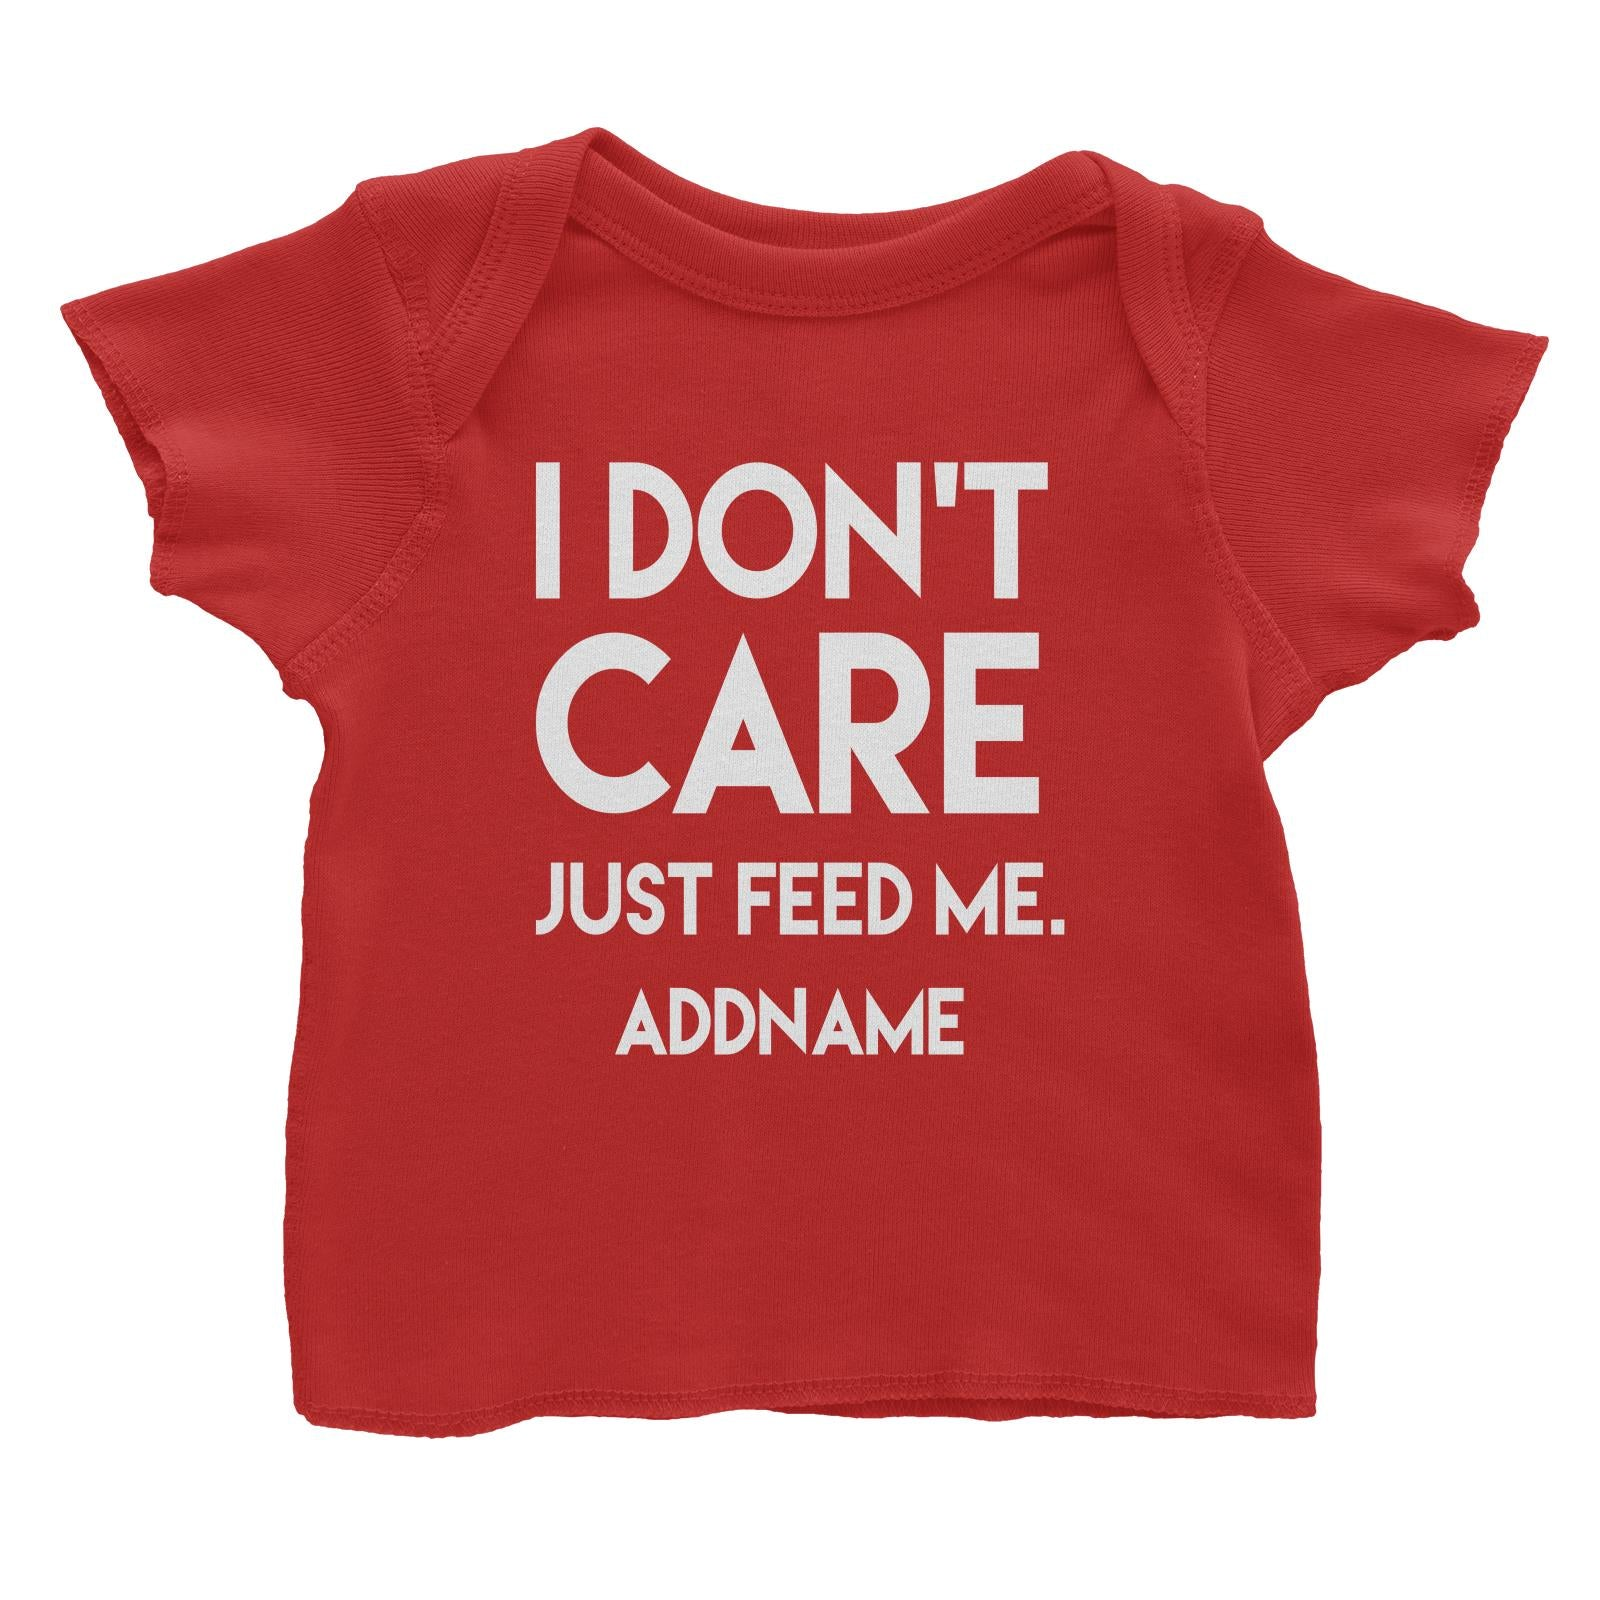 I Don't Care Who's Right Just Feed Me Addname Baby T-Shirt  Funny Matching Family Personalizable Designs